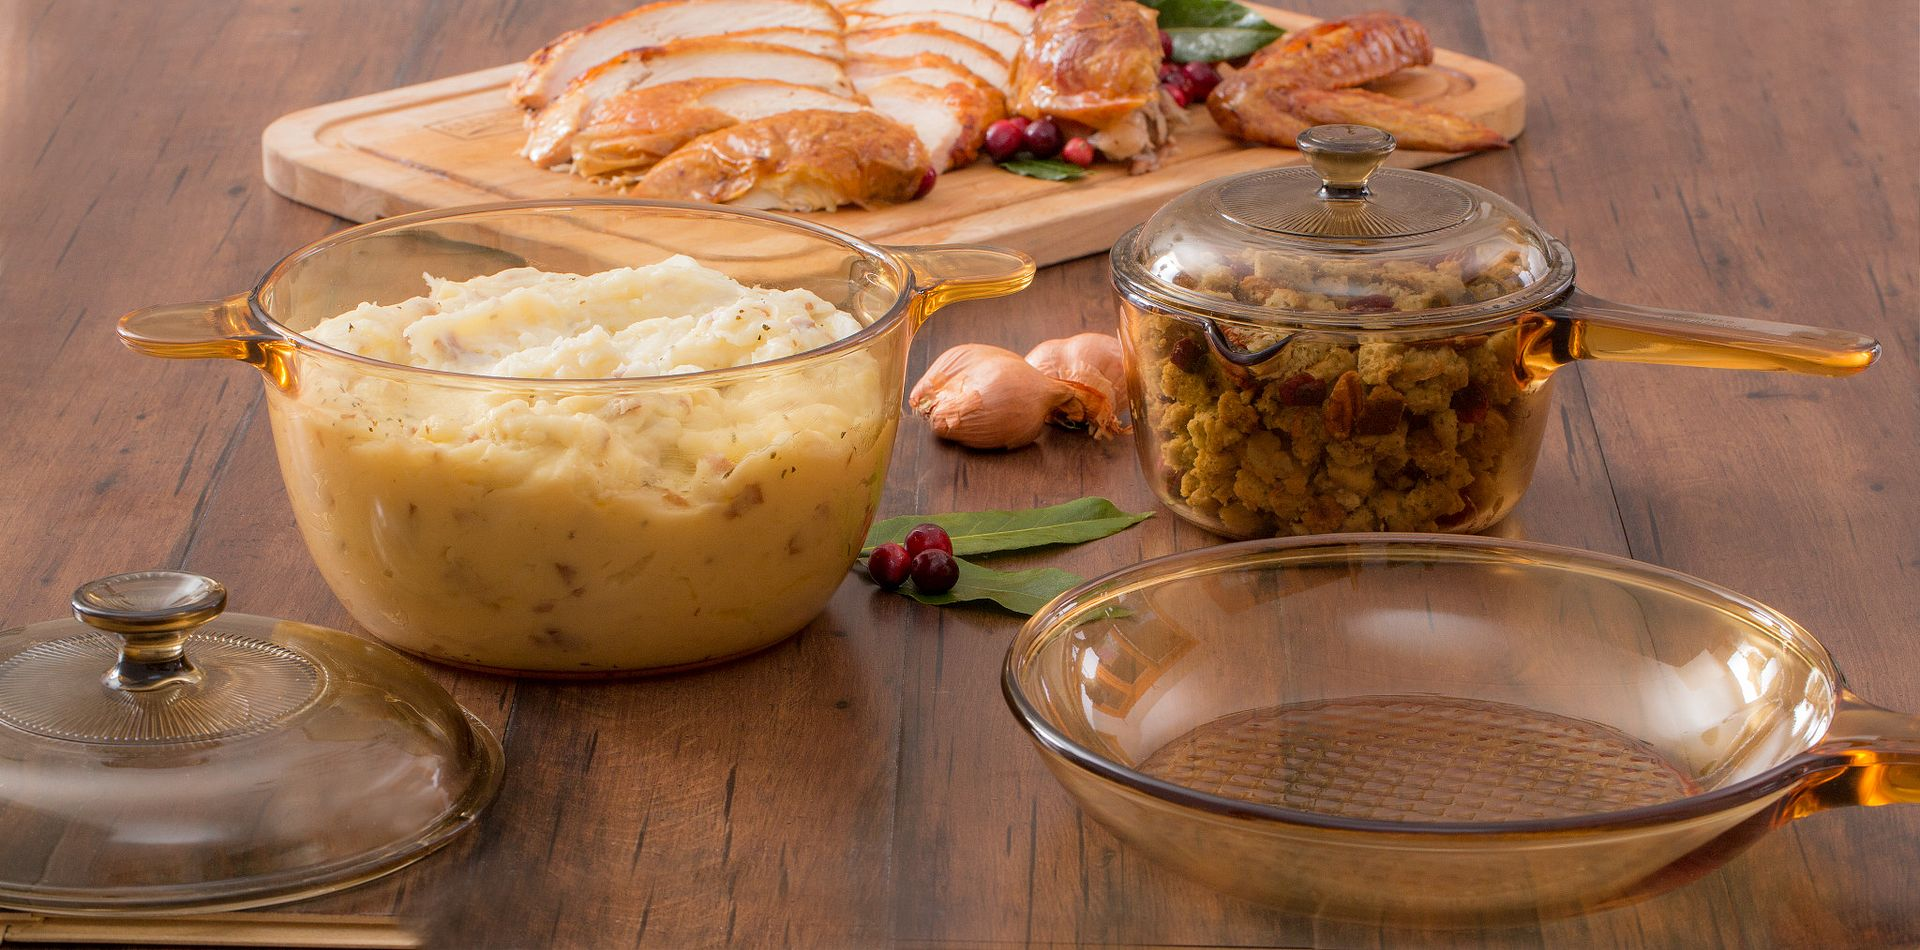 vis_5pc_cookware_thanksgiving_cagwin_1094317_1